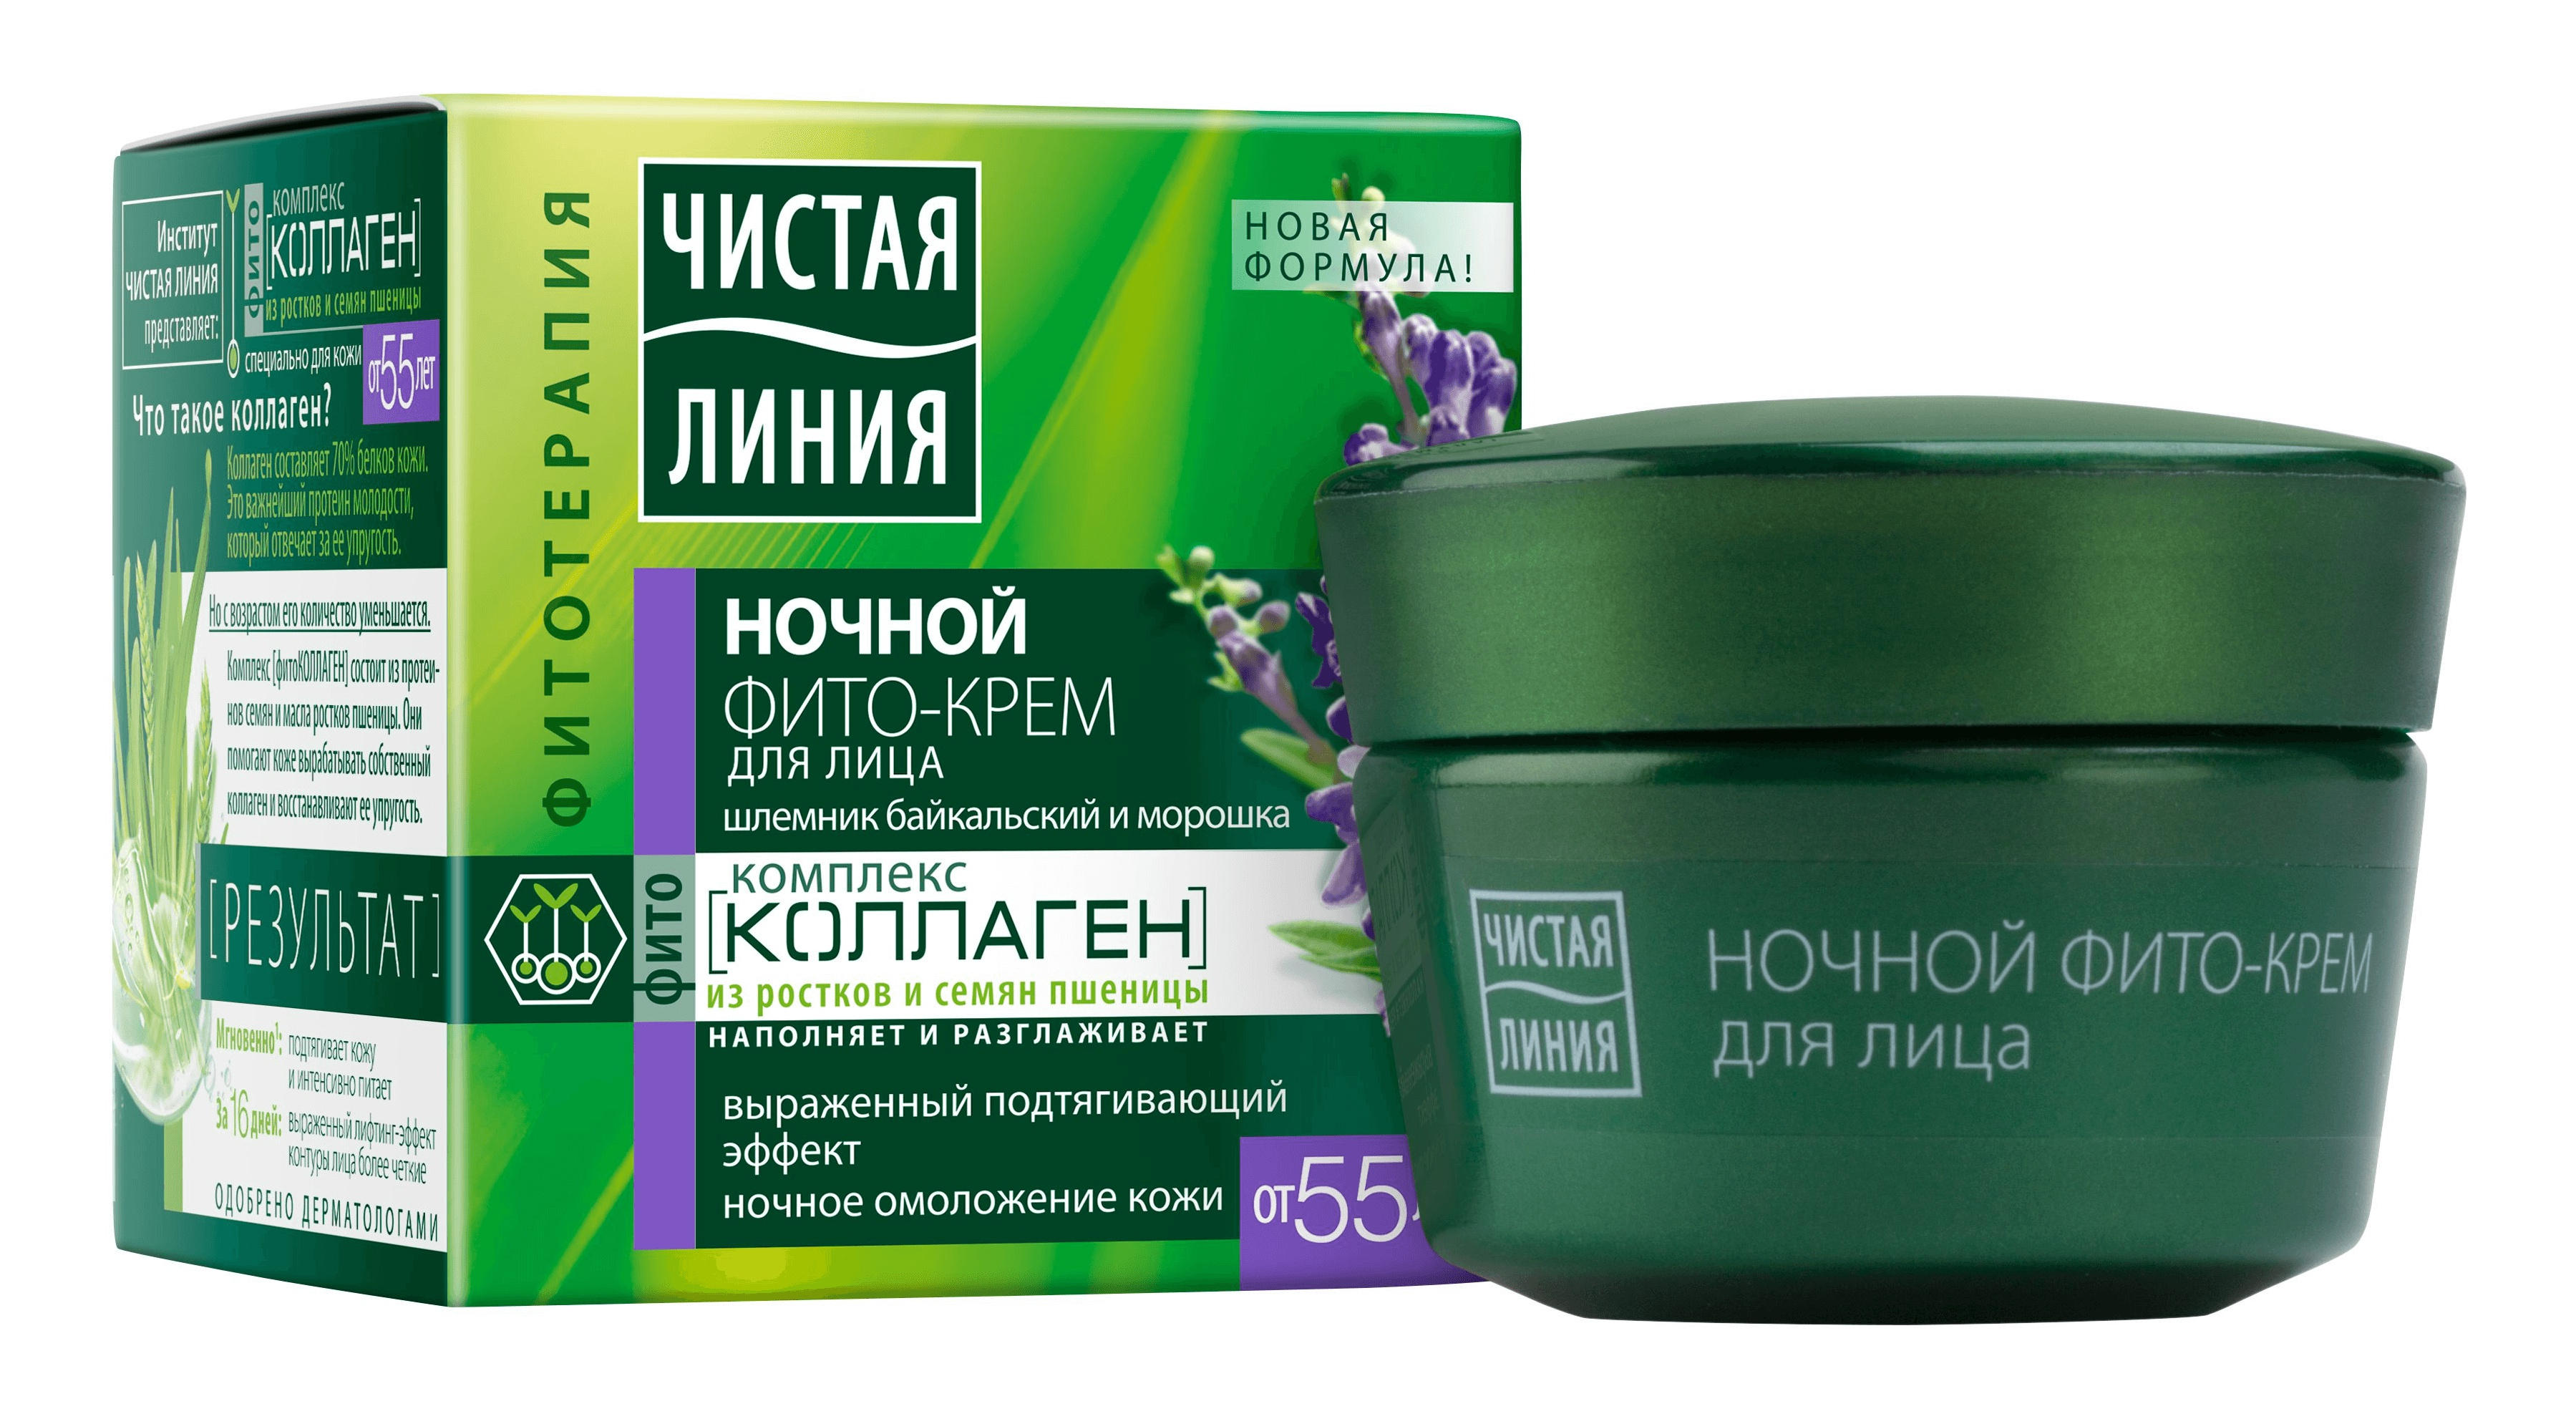 Chistaya Liniya Face Cream From 55 Years Old - Pure Line